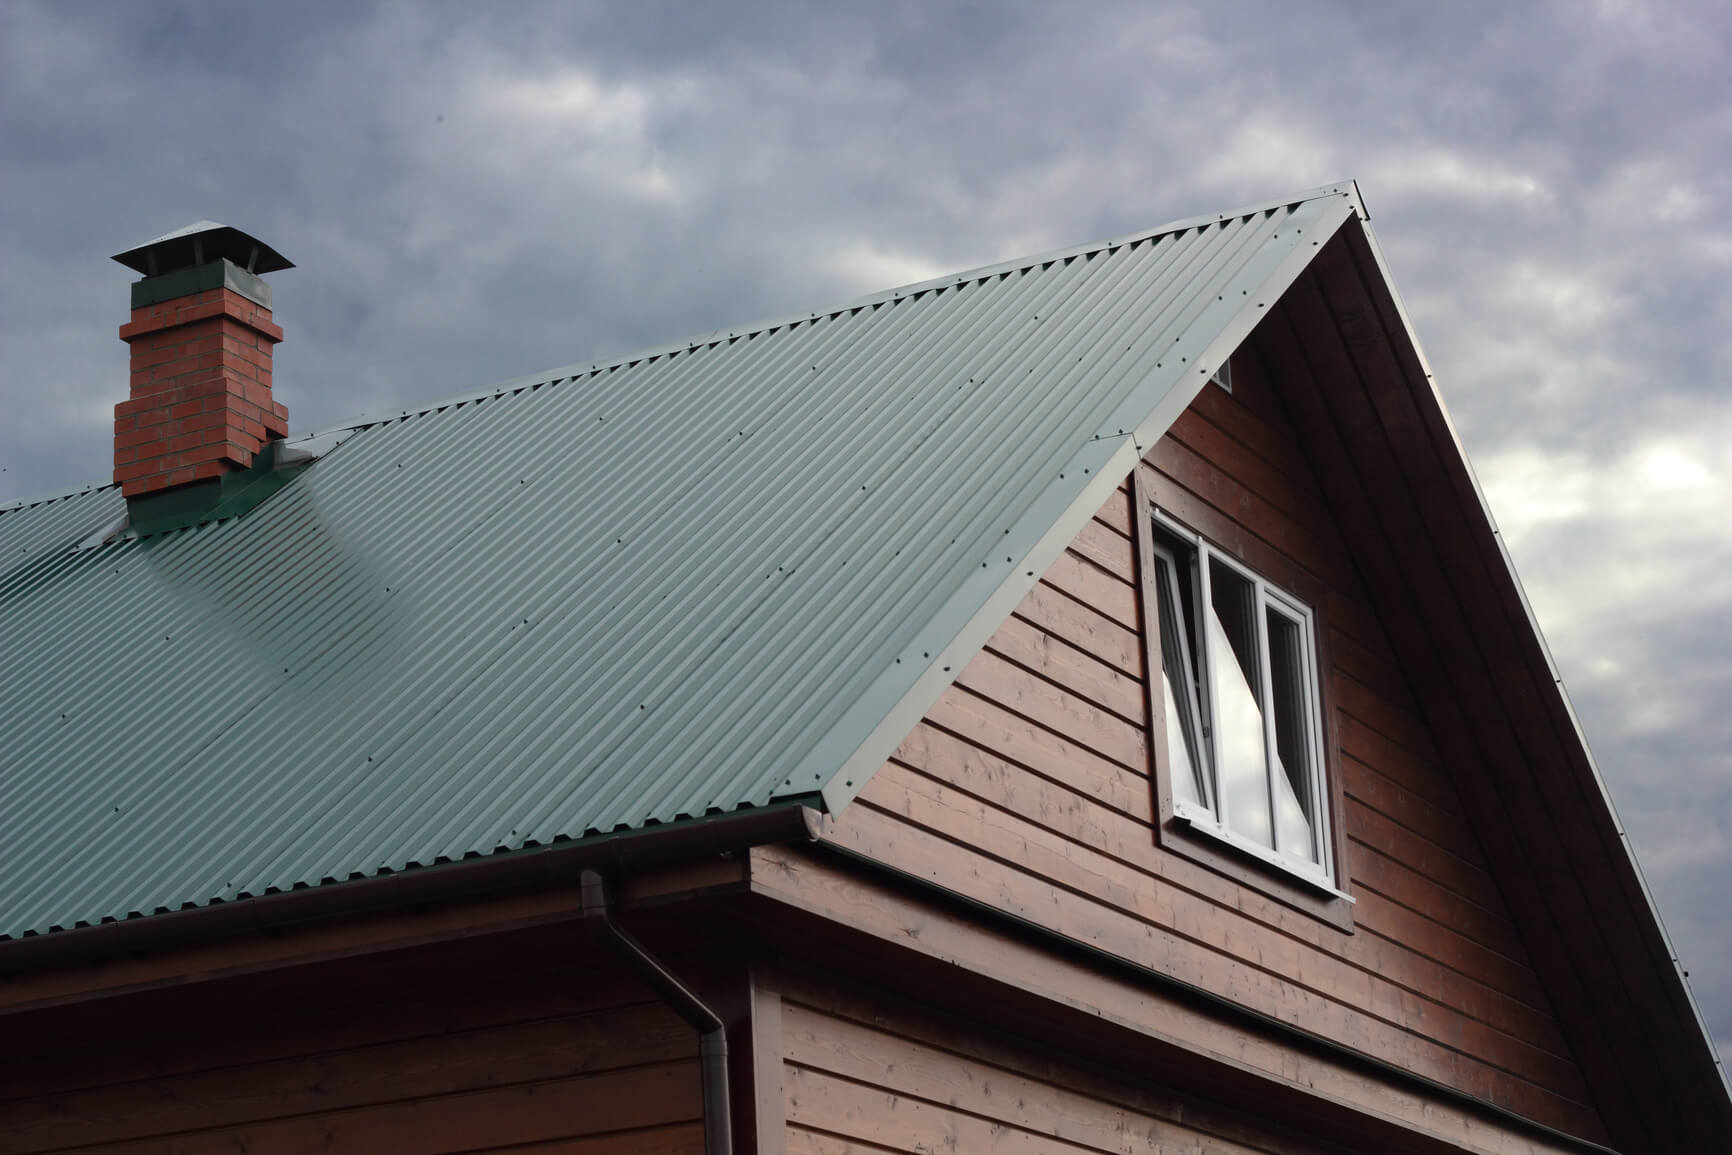 Roofing Material: Is a metal roof right for my house?